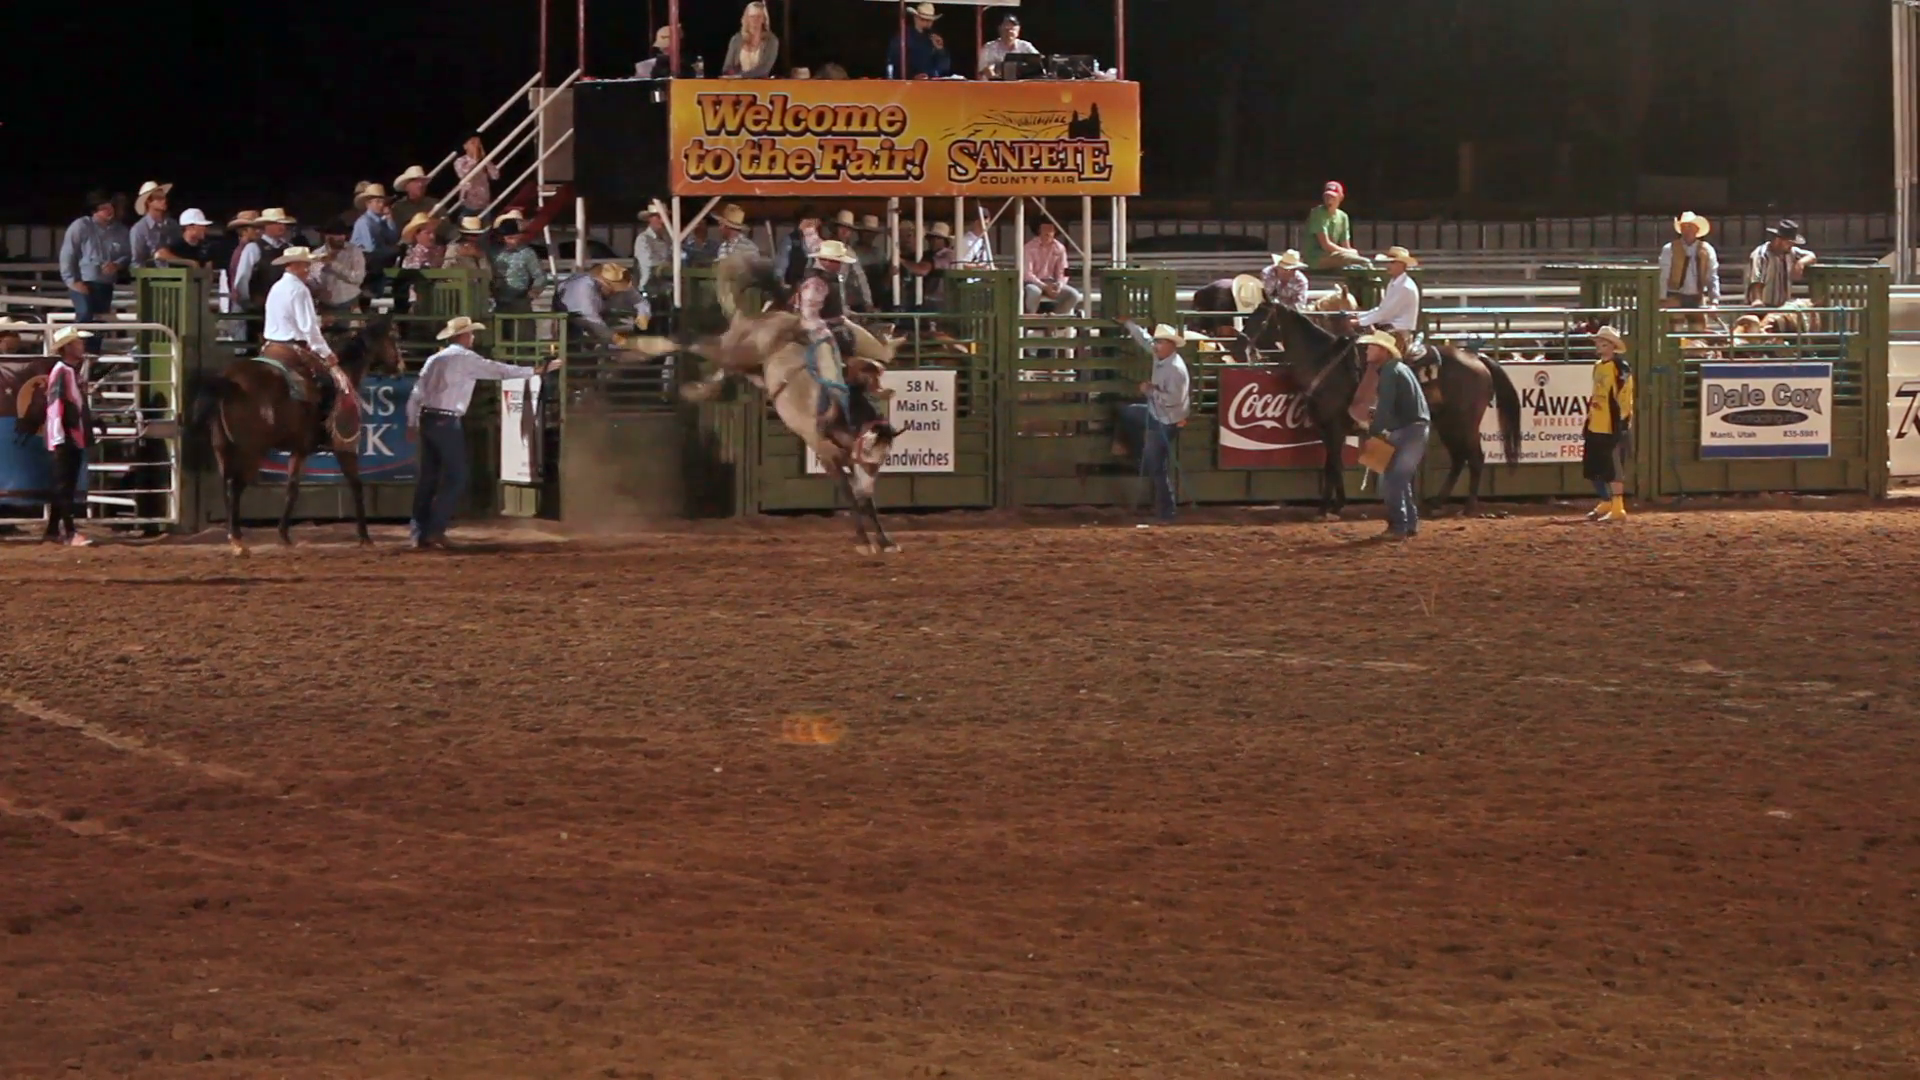 Rodeo saddle bronco horse ride gets rough ride out of chute with a hard  landing slow motion. Night time event in central Utah. Cowboy rides hard  riding PlusPng.com  - Rodeo PNG HD